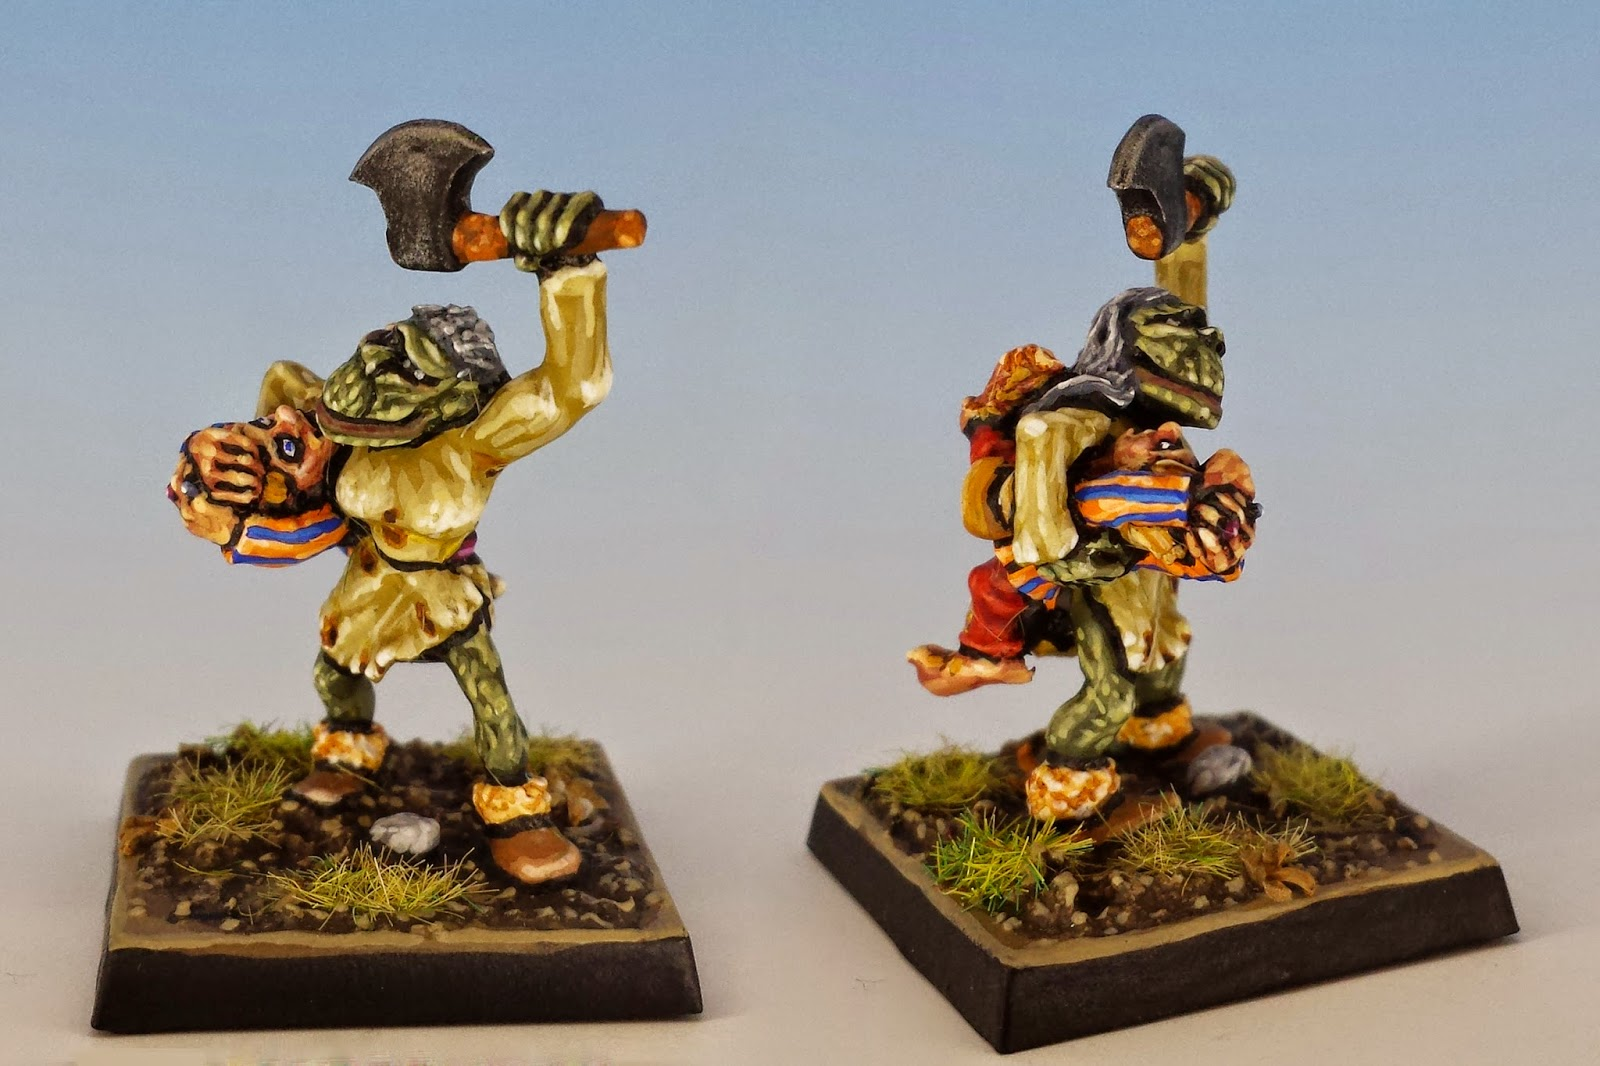 Orc Villager C46, Citadel Miniatures (1988, sculpted by Trish Carden)